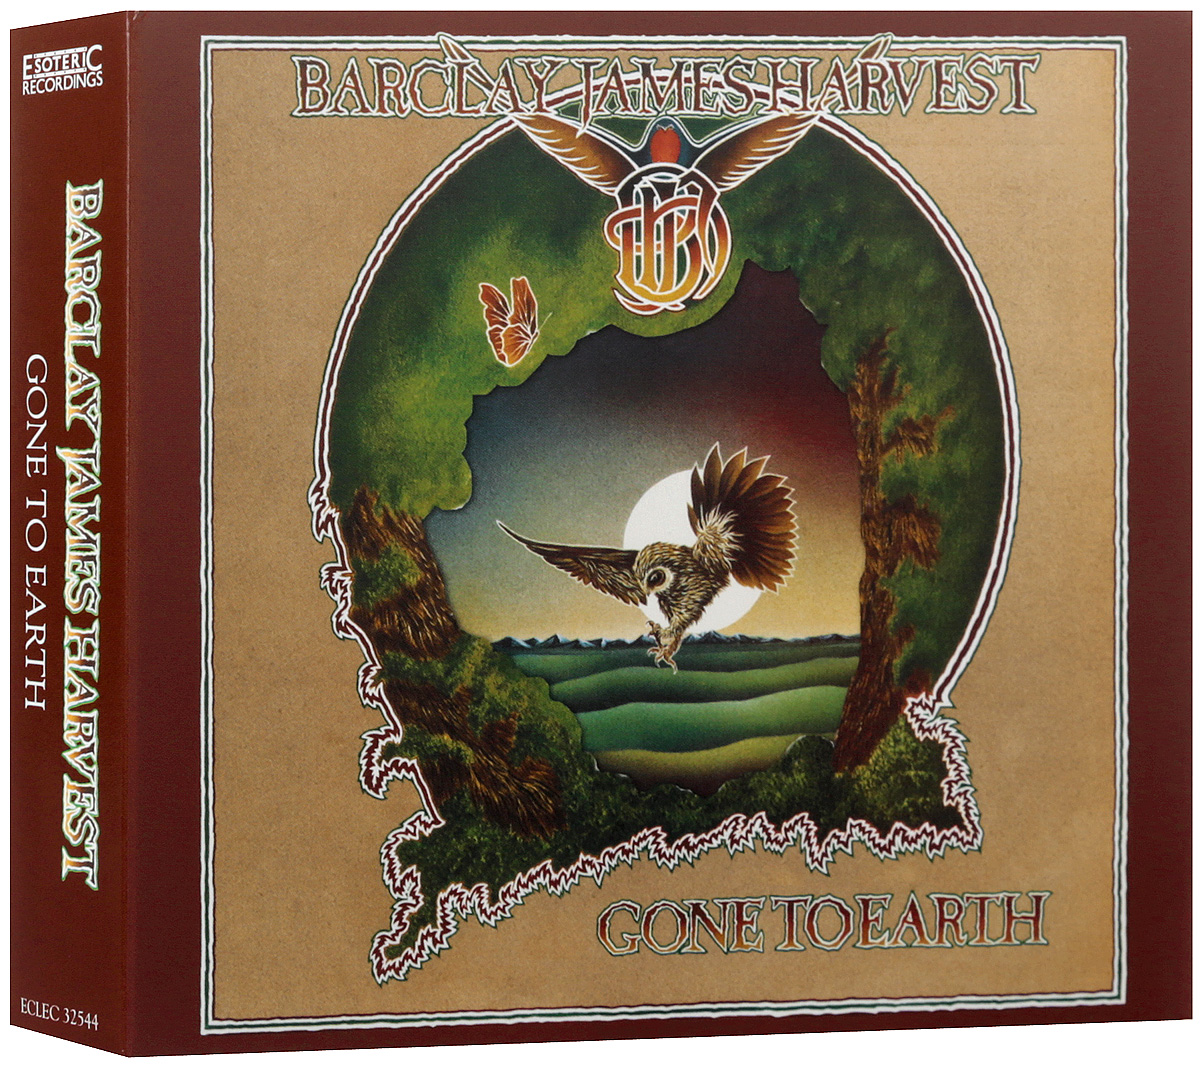 Фото - Barclay James Harvest Barclay James Harvest. Gone To Earth. Deluxe Edition (2 CD + DVD) cd led zeppelin ii deluxe edition